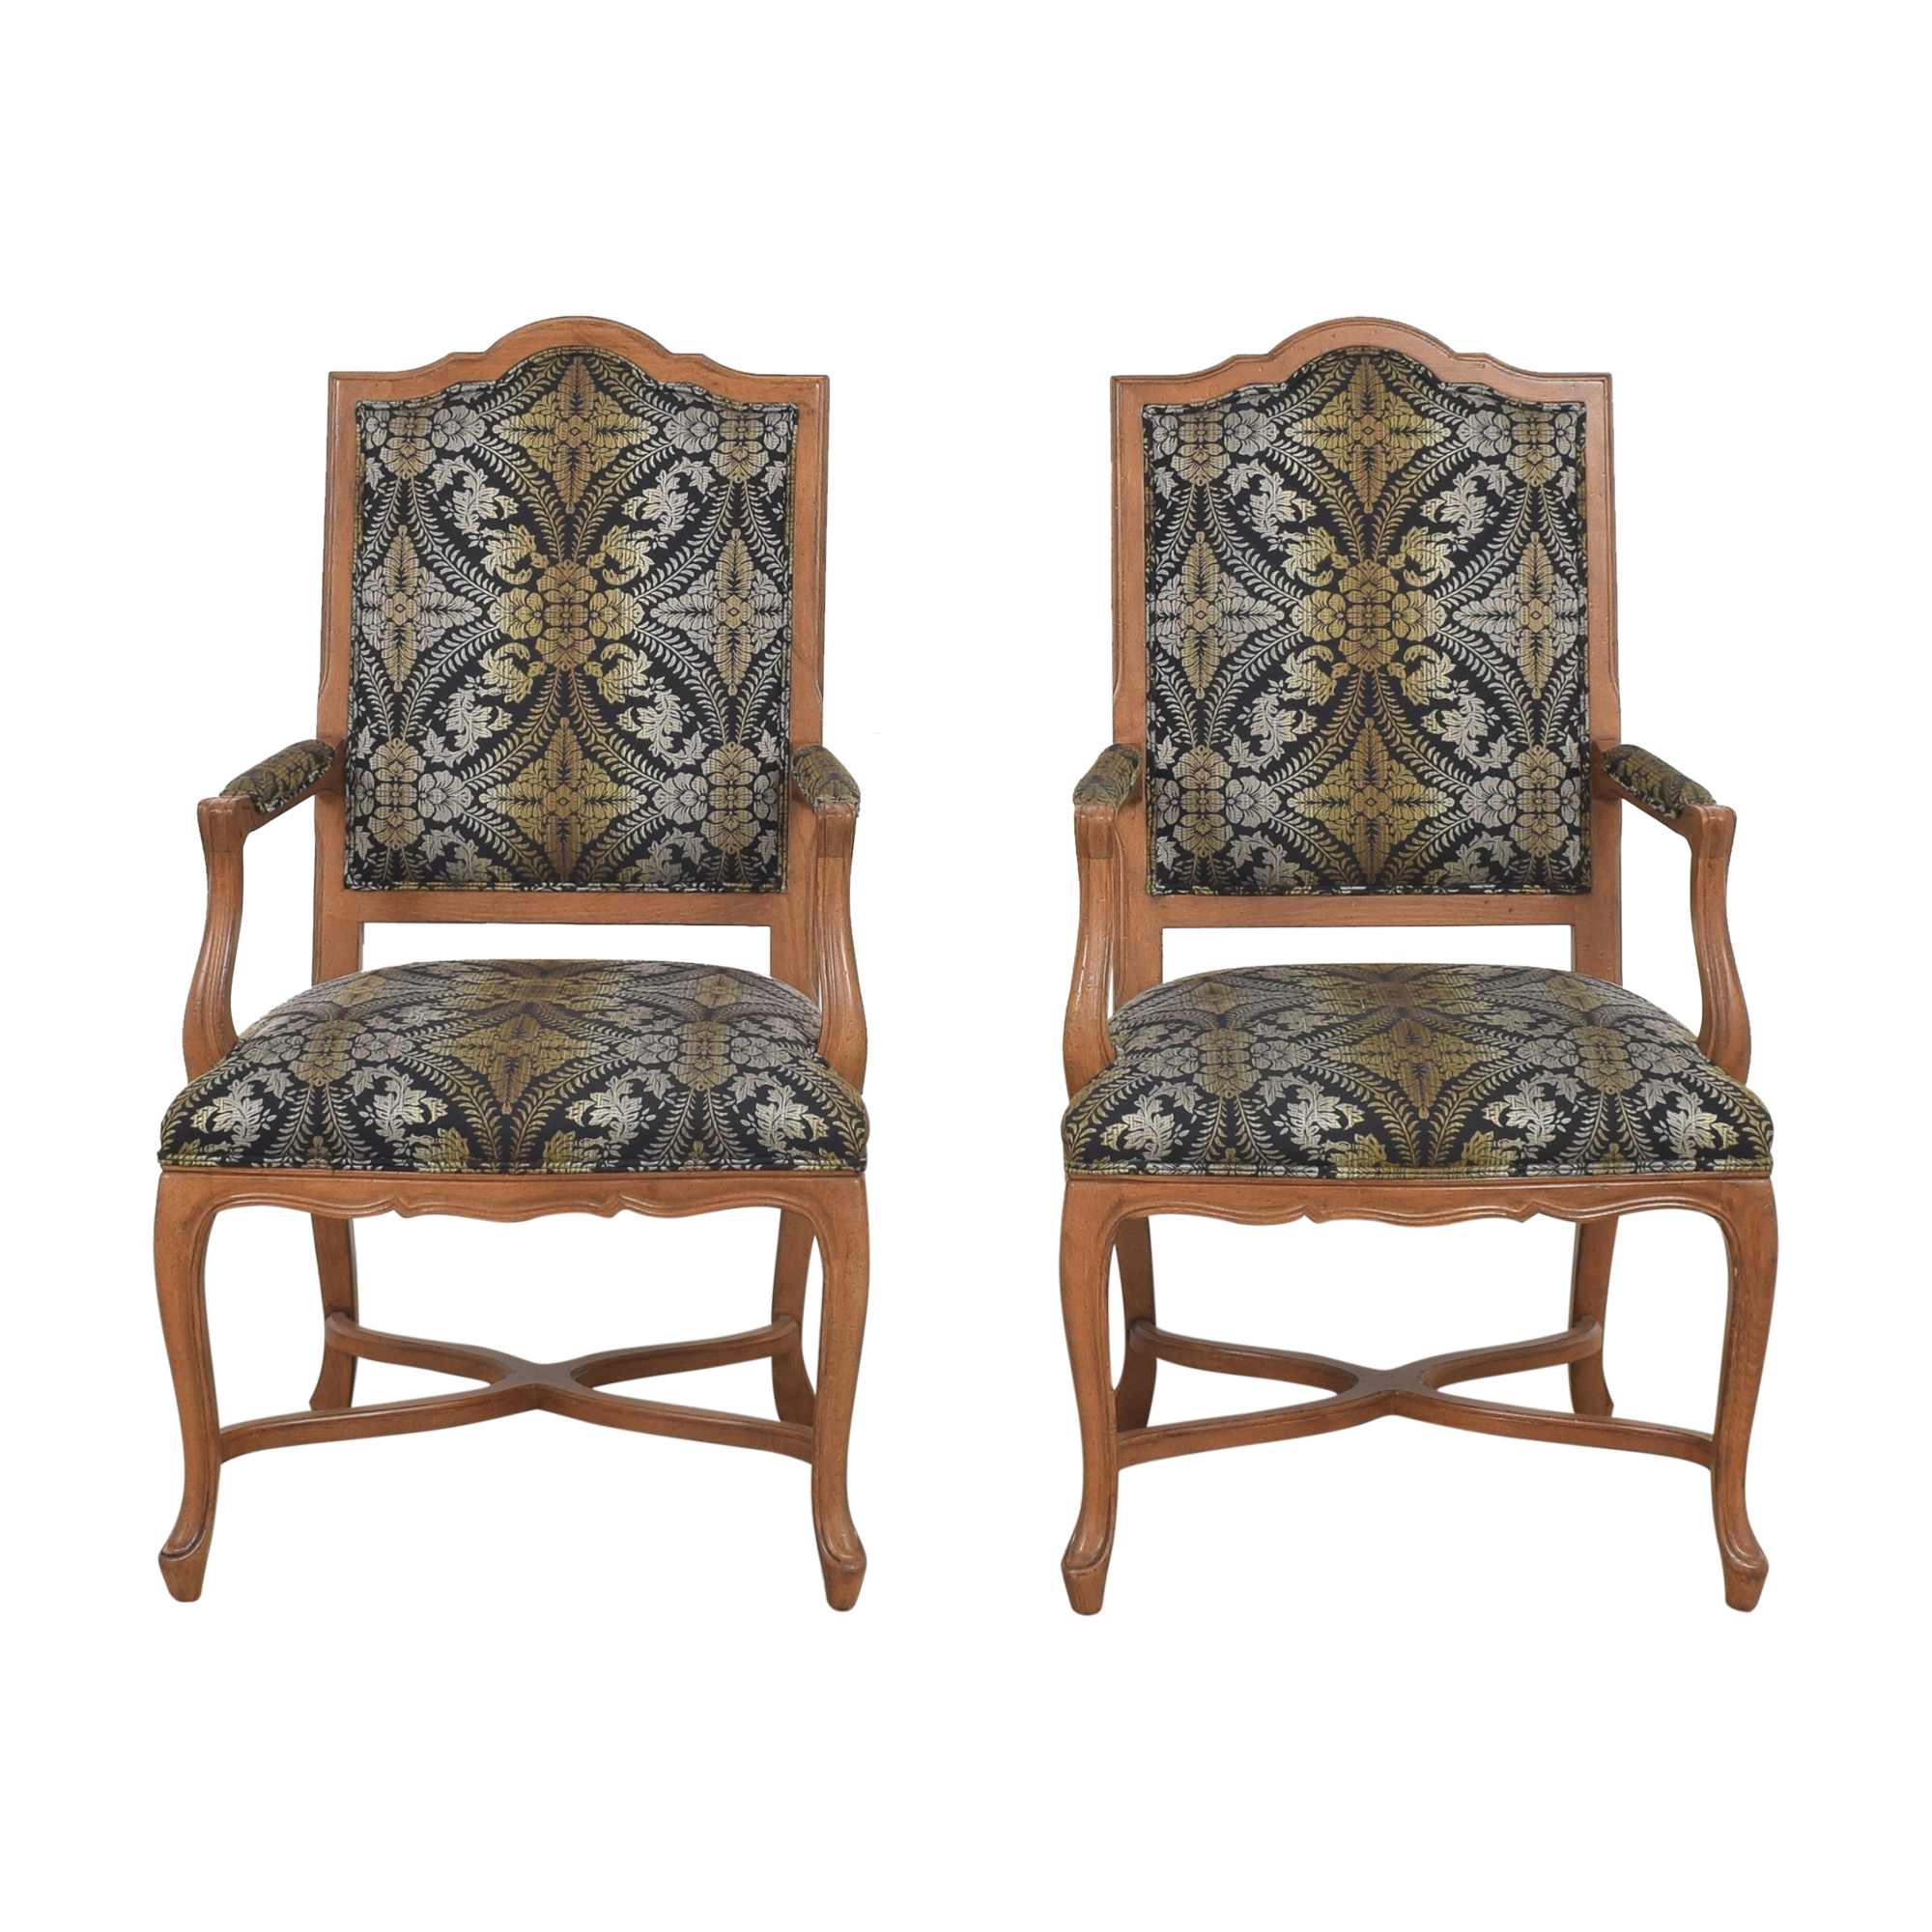 Ethan Allen Ethan Allen Dining Arm Chairs pa